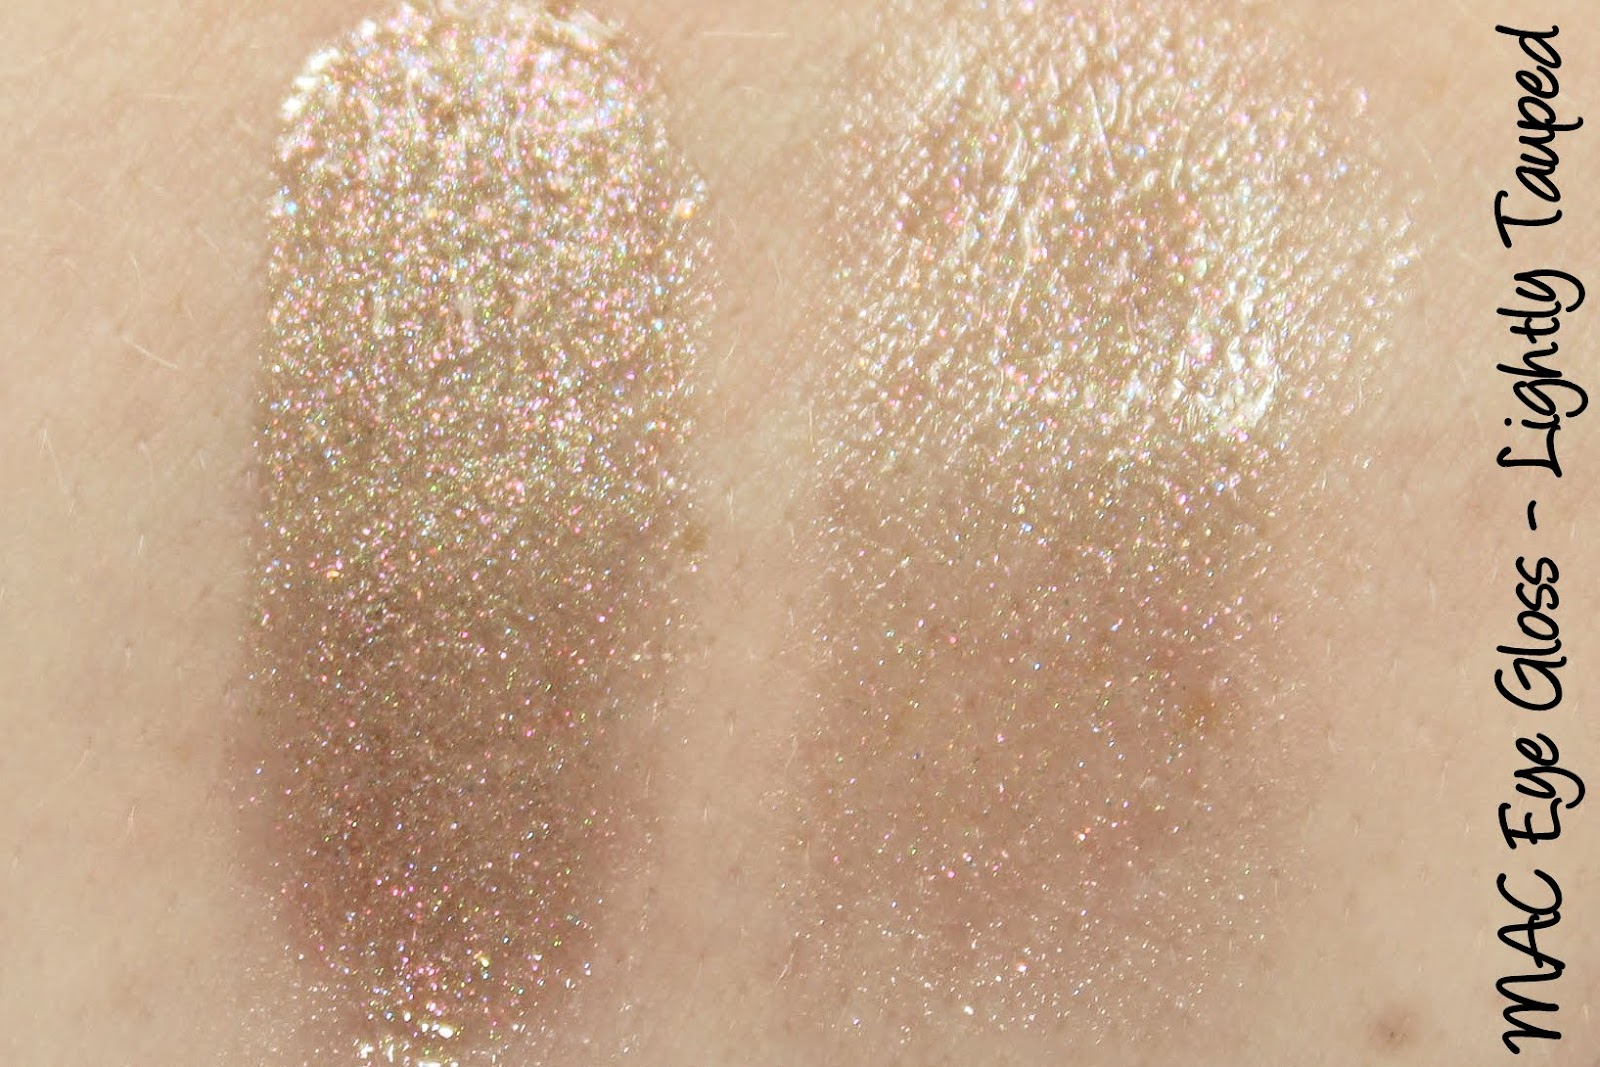 MAC Cinderella: Studio Eye Gloss - Lightly Tauped Swatches & Review